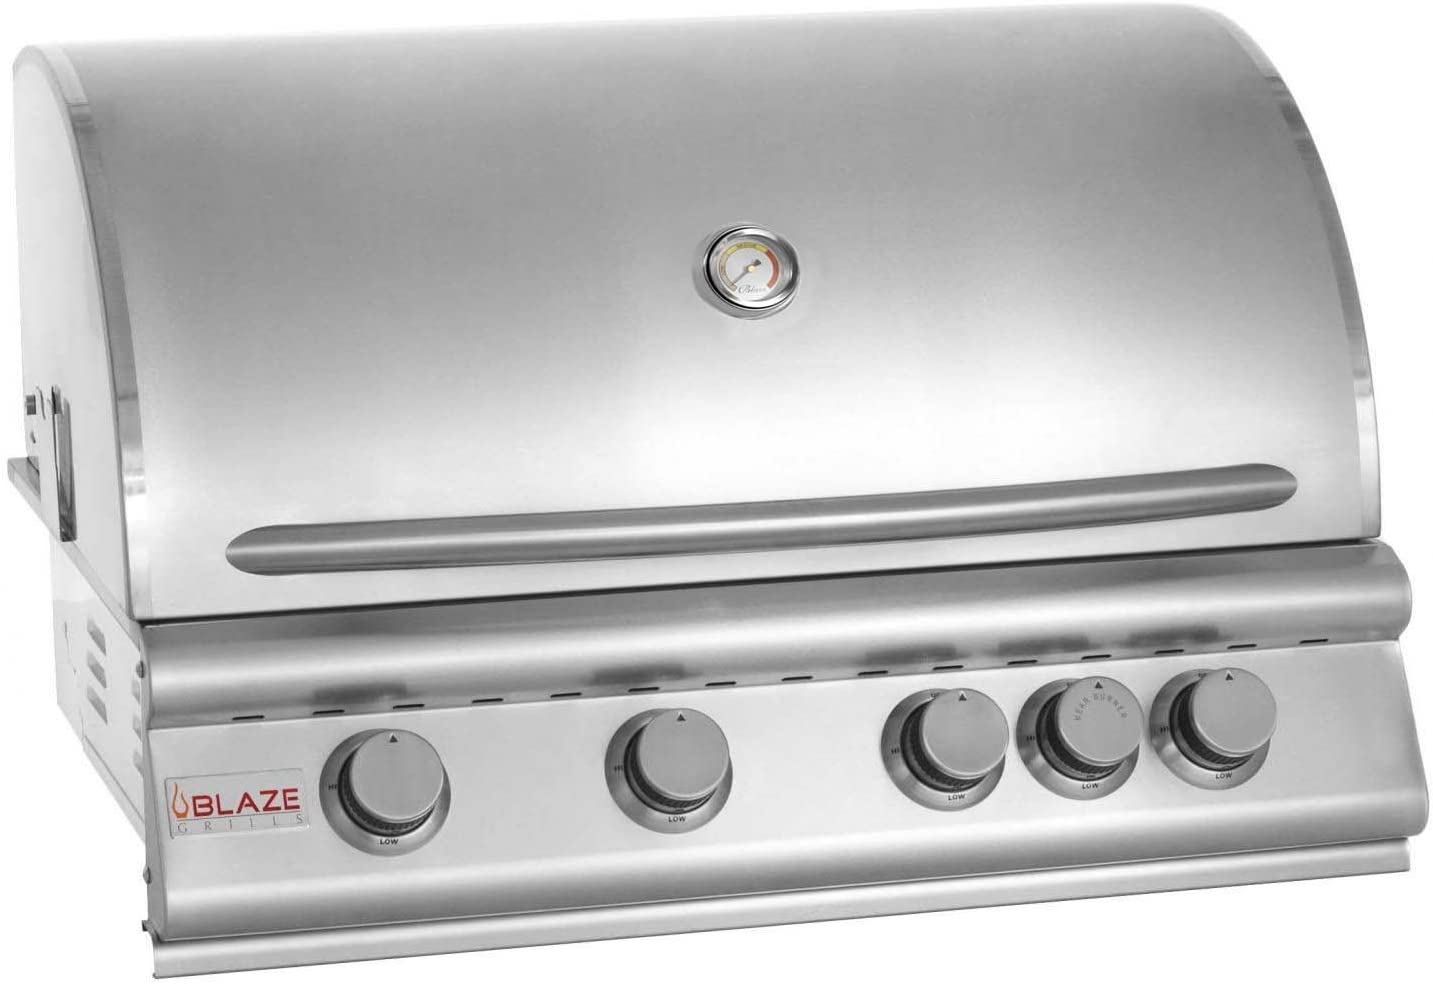 Blaze Grills 32-Inch Built-In 4-Burner Natural Gas Grill with Heat Zone Separators and Rear Infrared Rotisserie Burner